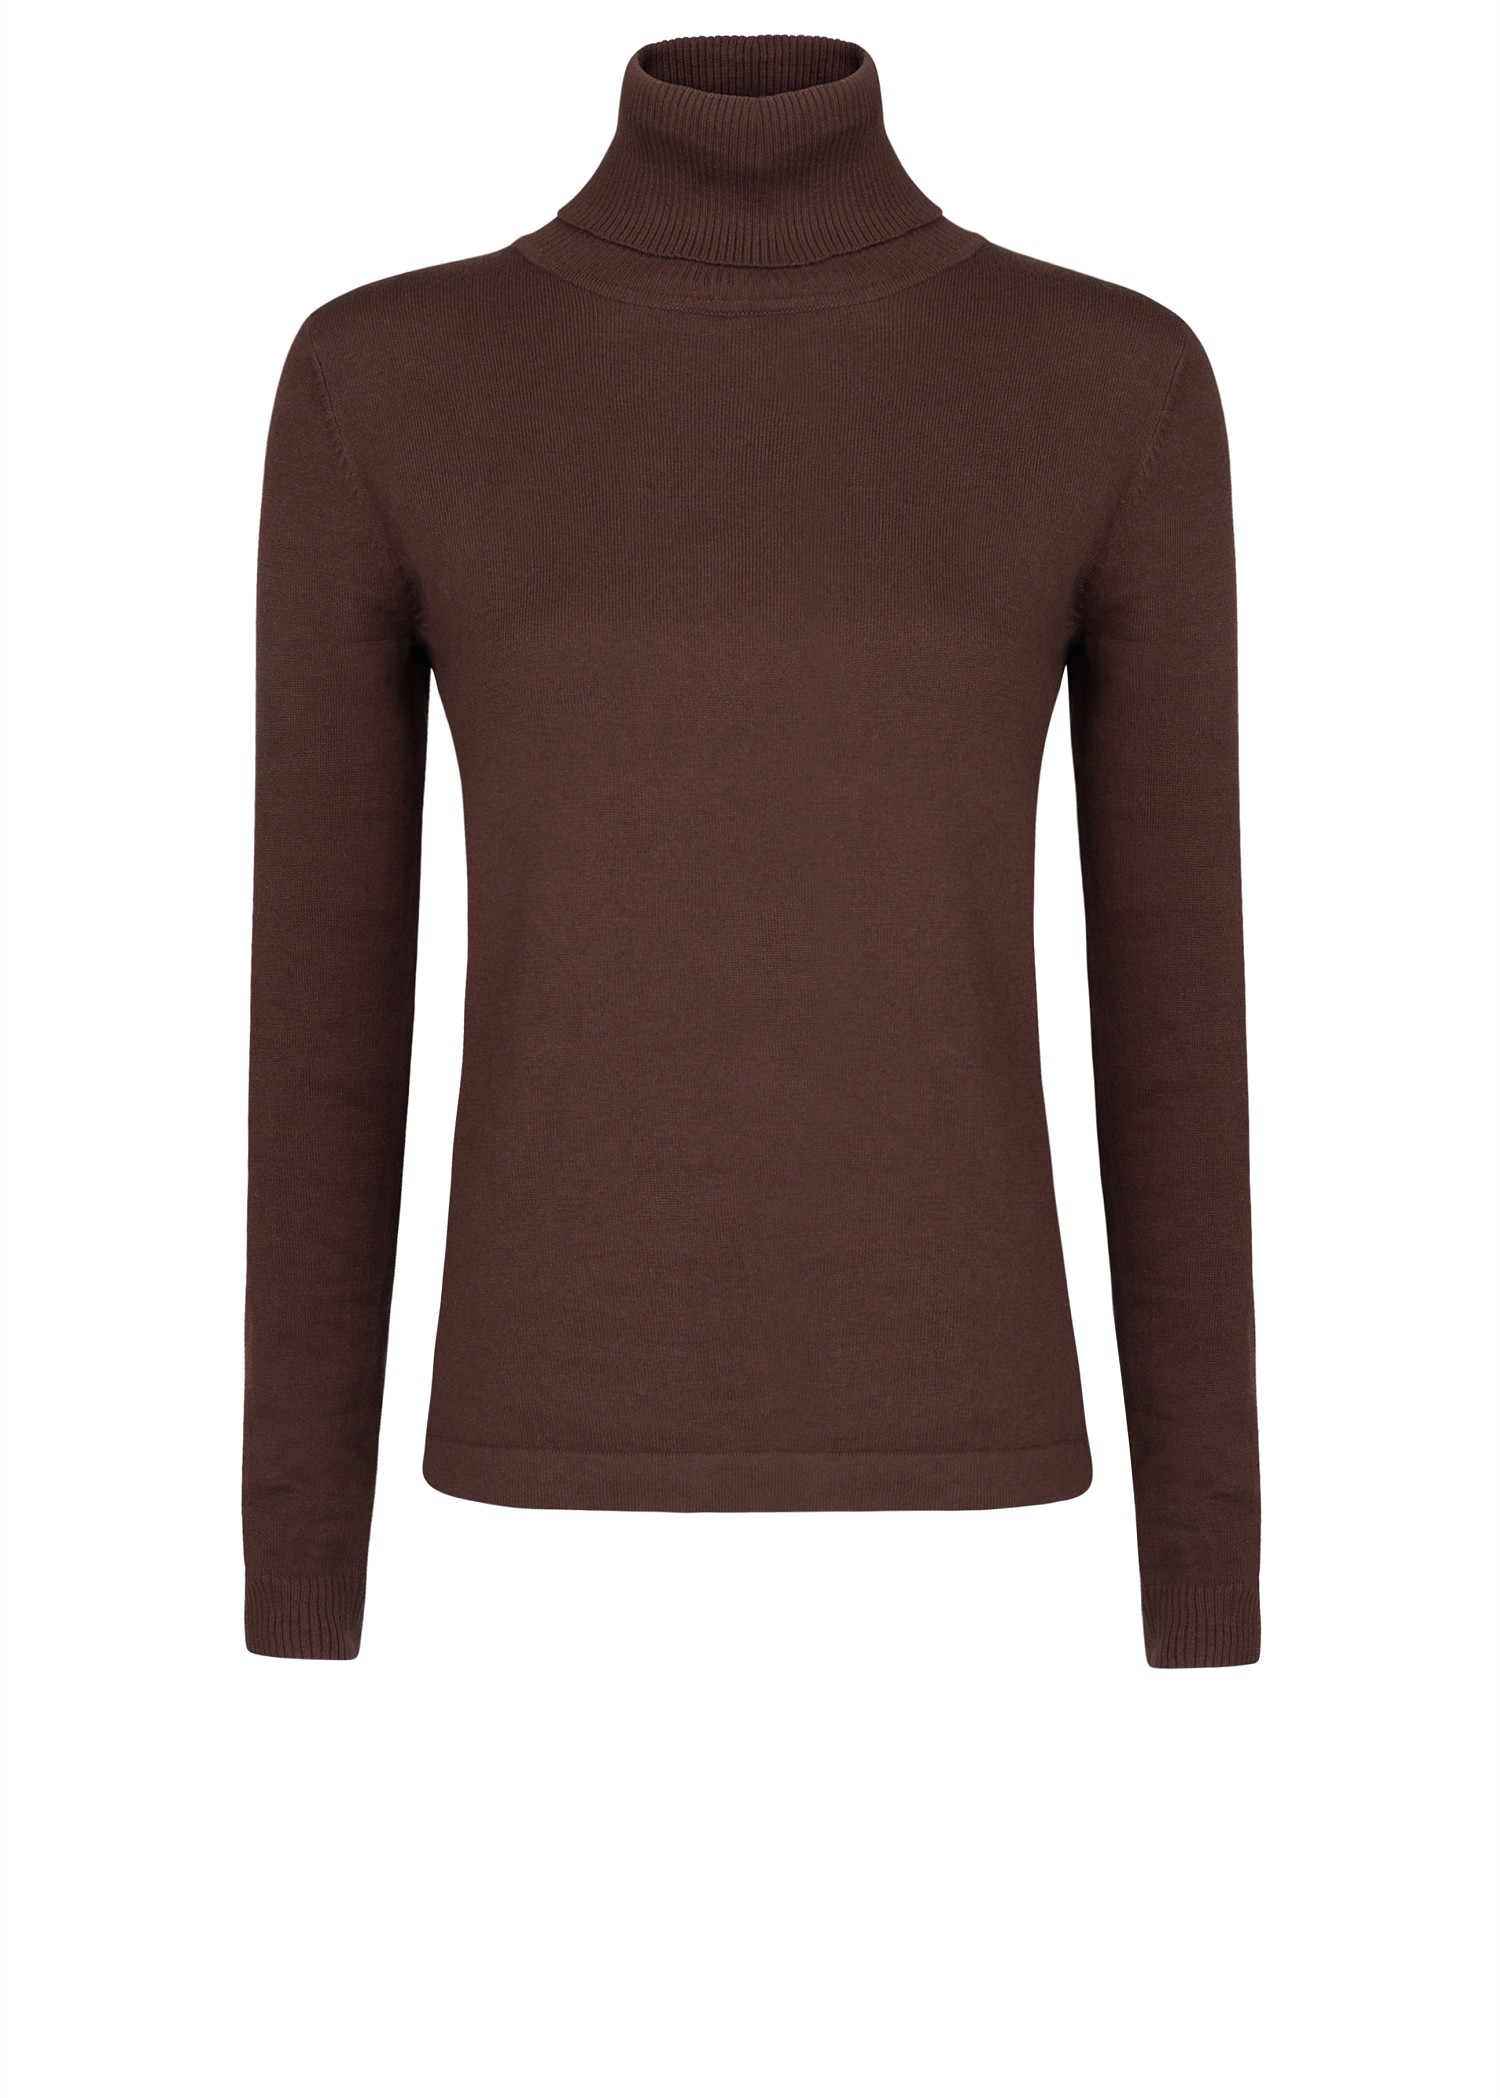 Mango Sweater in Brown | Lyst